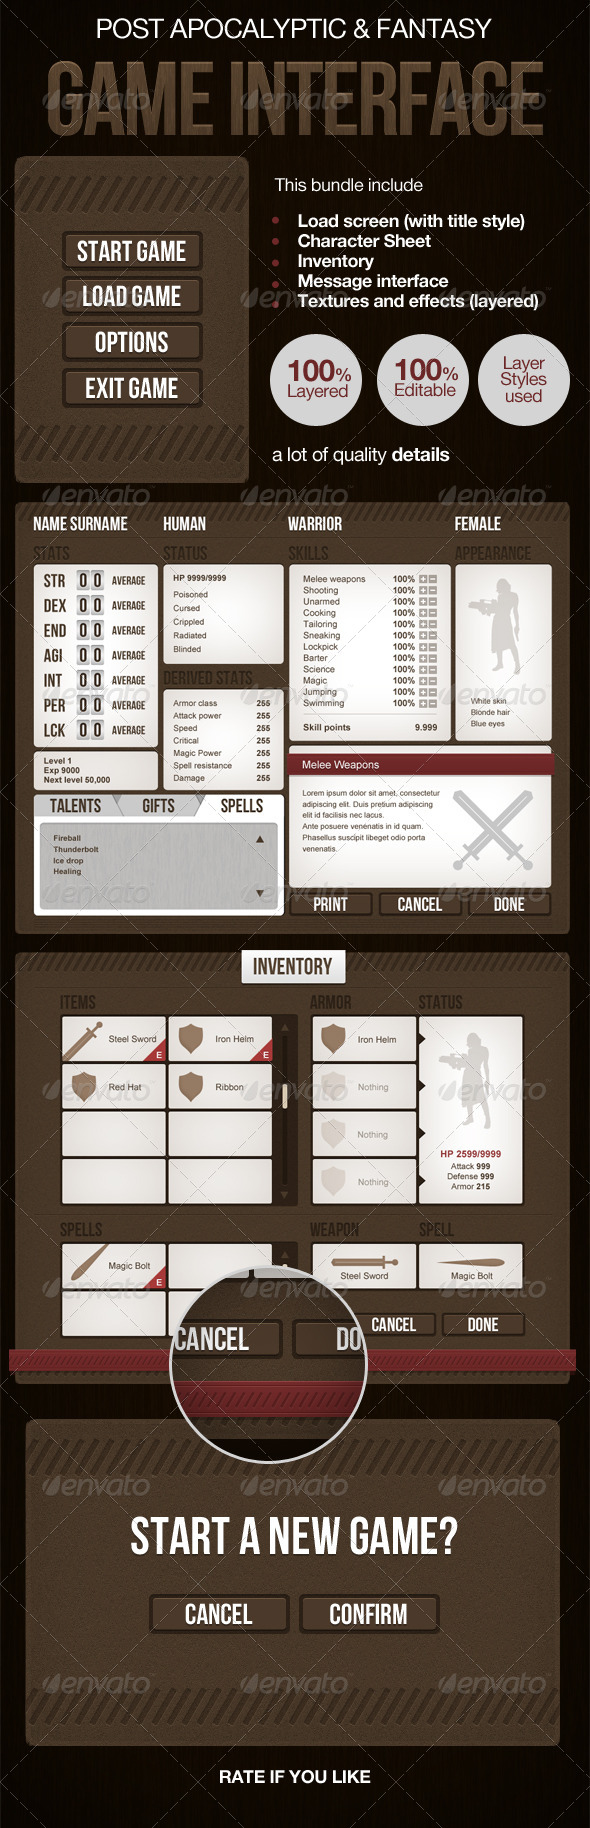 Post Apocalyptic or Medieval RPG Game Interface - User Interfaces Web Elements